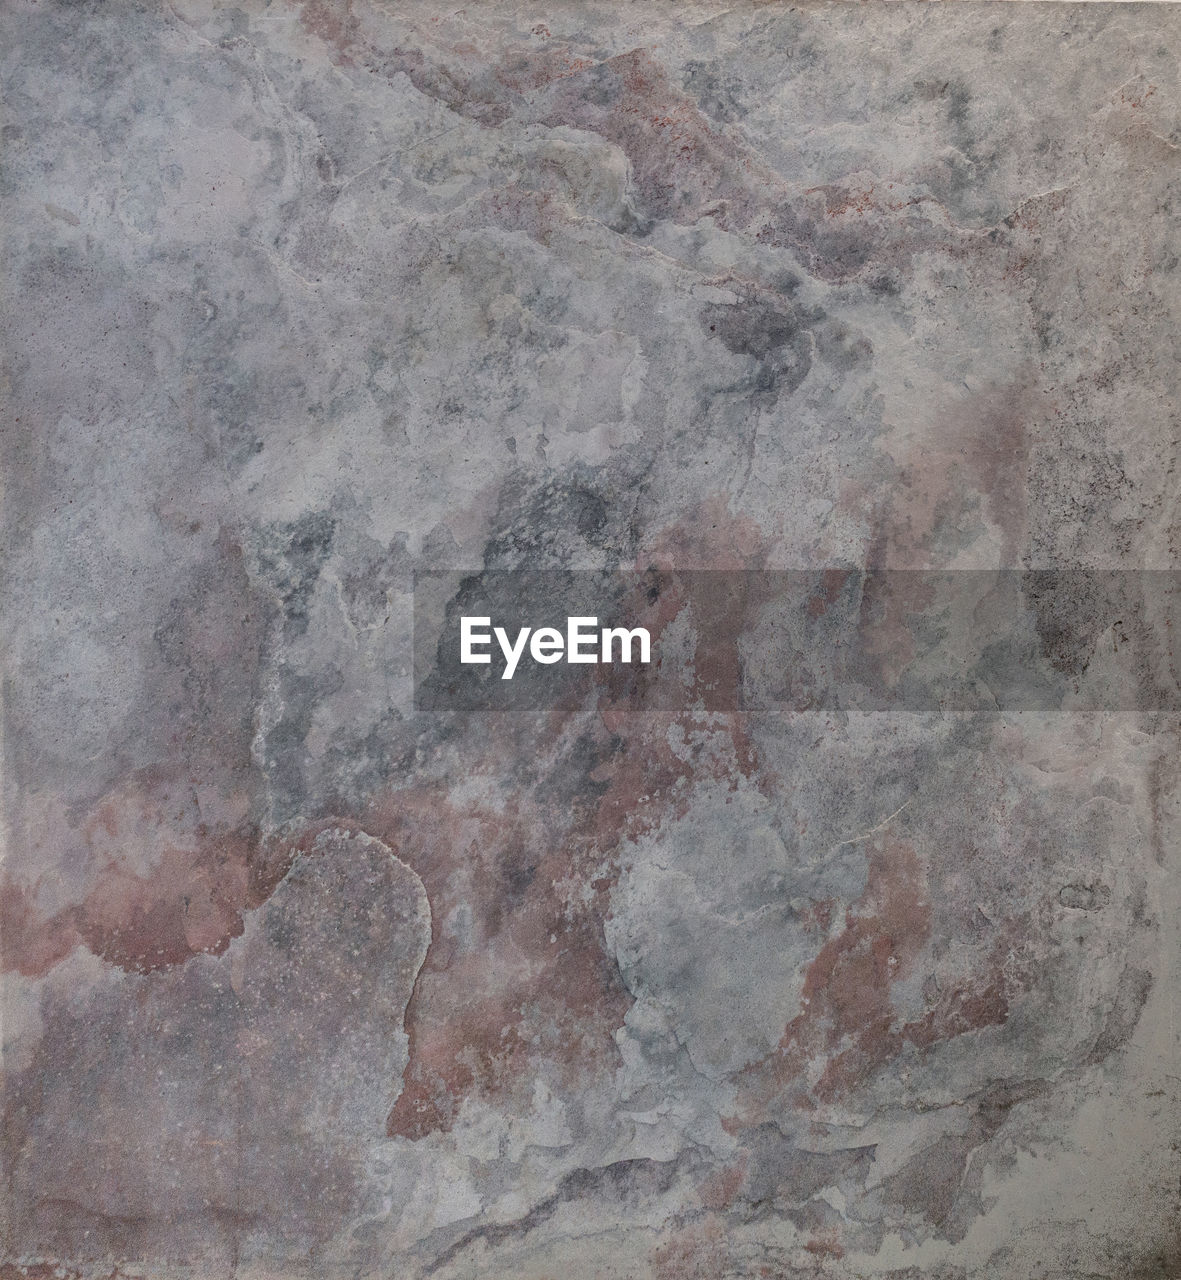 textured, backgrounds, full frame, pattern, gray, abstract, architecture, no people, rough, wall - building feature, solid, marble, built structure, marbled effect, close-up, rock, surface level, stone material, art and craft, rock - object, textured effect, concrete, abstract backgrounds, mural